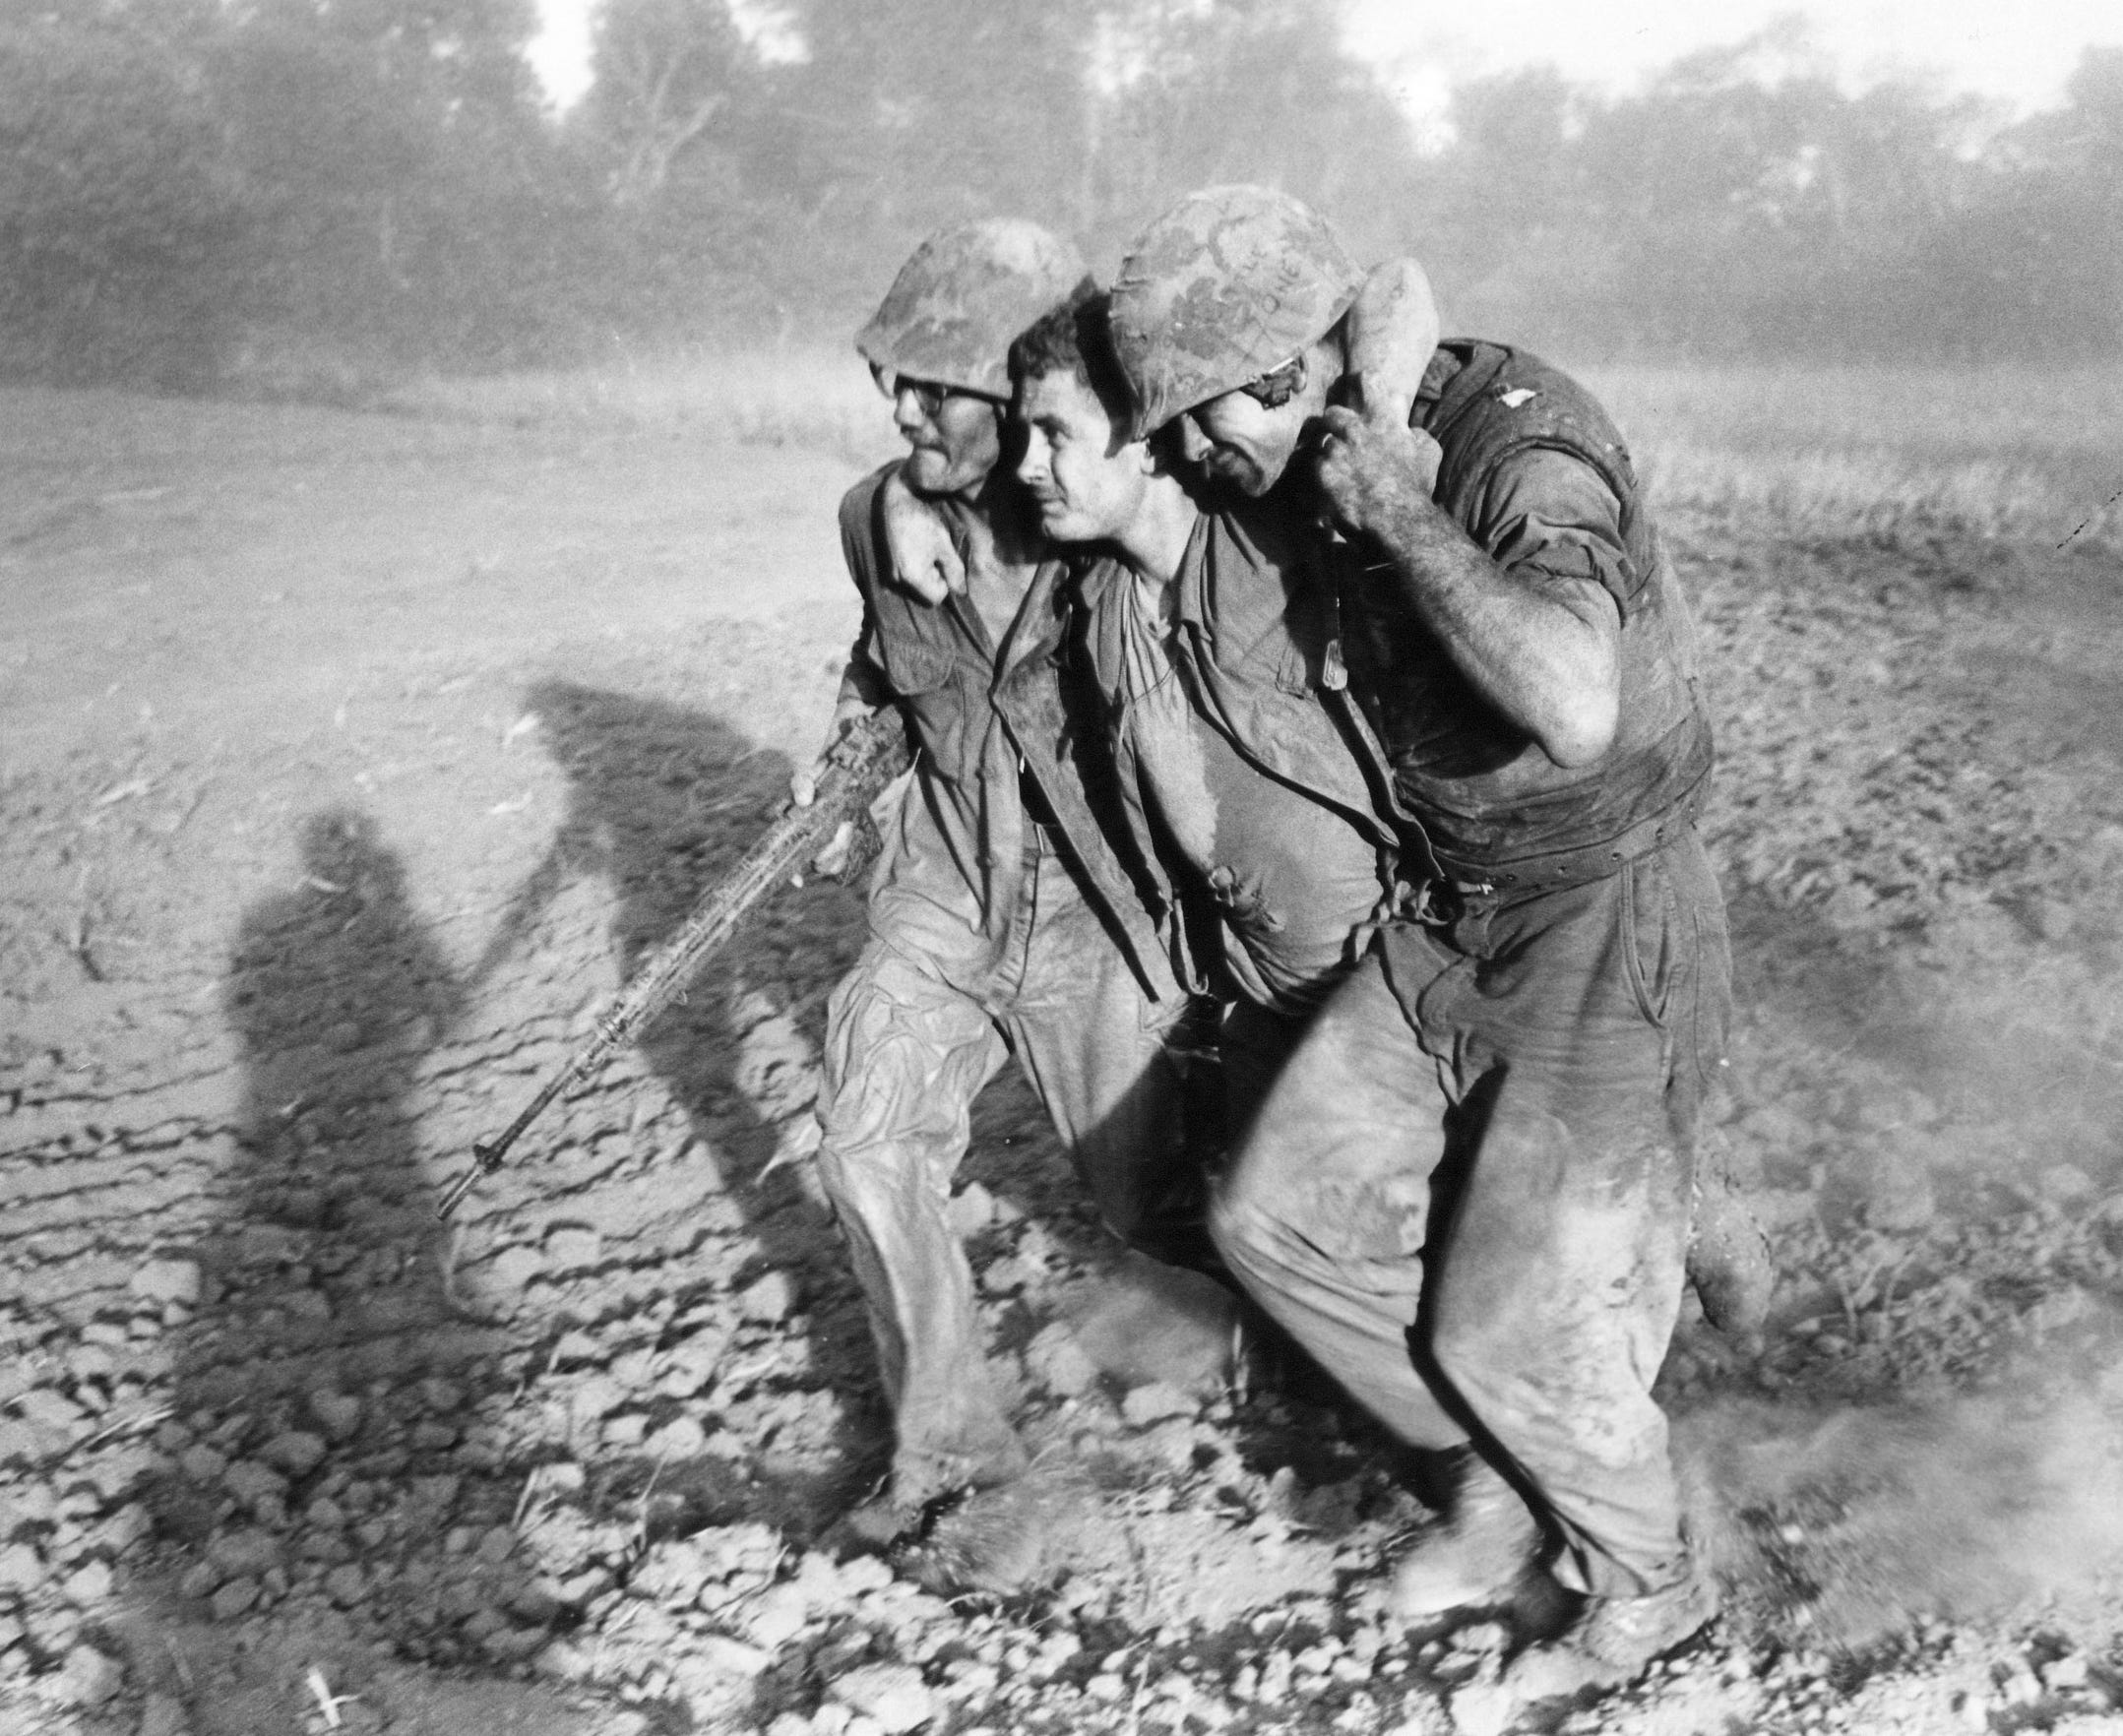 In this Aug. 19, 1965 photo, a wounded U.S. Marine is helped by two other Marines to an evacuation helicopter near Van Tuong, Vietnam.  Hattie and Jim Ford speculate that the reason Army Lt. Deane Taylor Jr. didn't run when his helicopter crashed in Vietnam was that one of the three crash survivors had a broken leg.